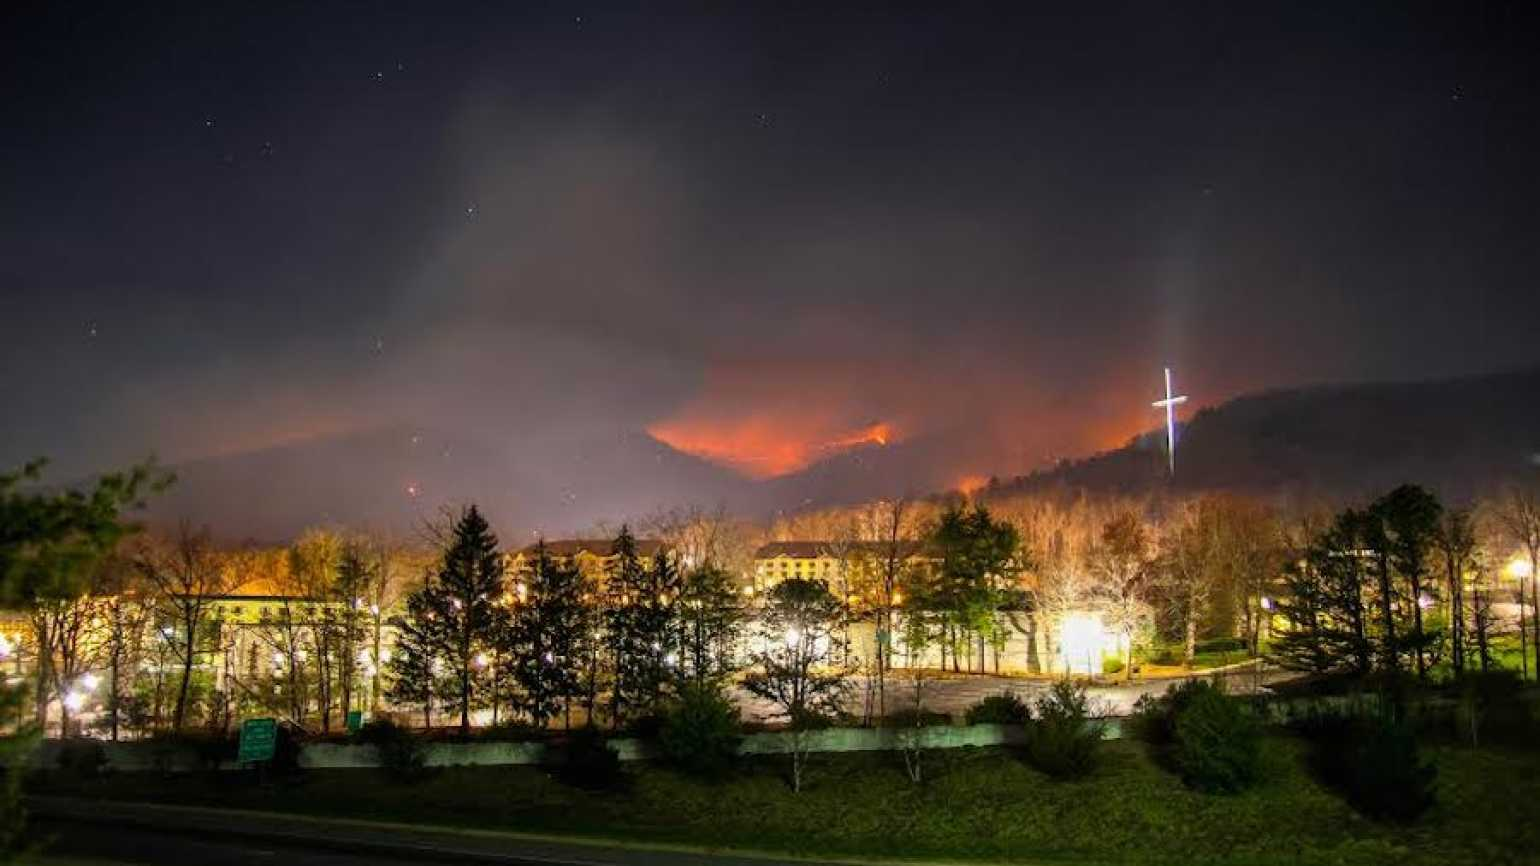 Cross on hill at Lifeway Ridgecrest Conference Center. Photo by Rey Castillo, Jr.